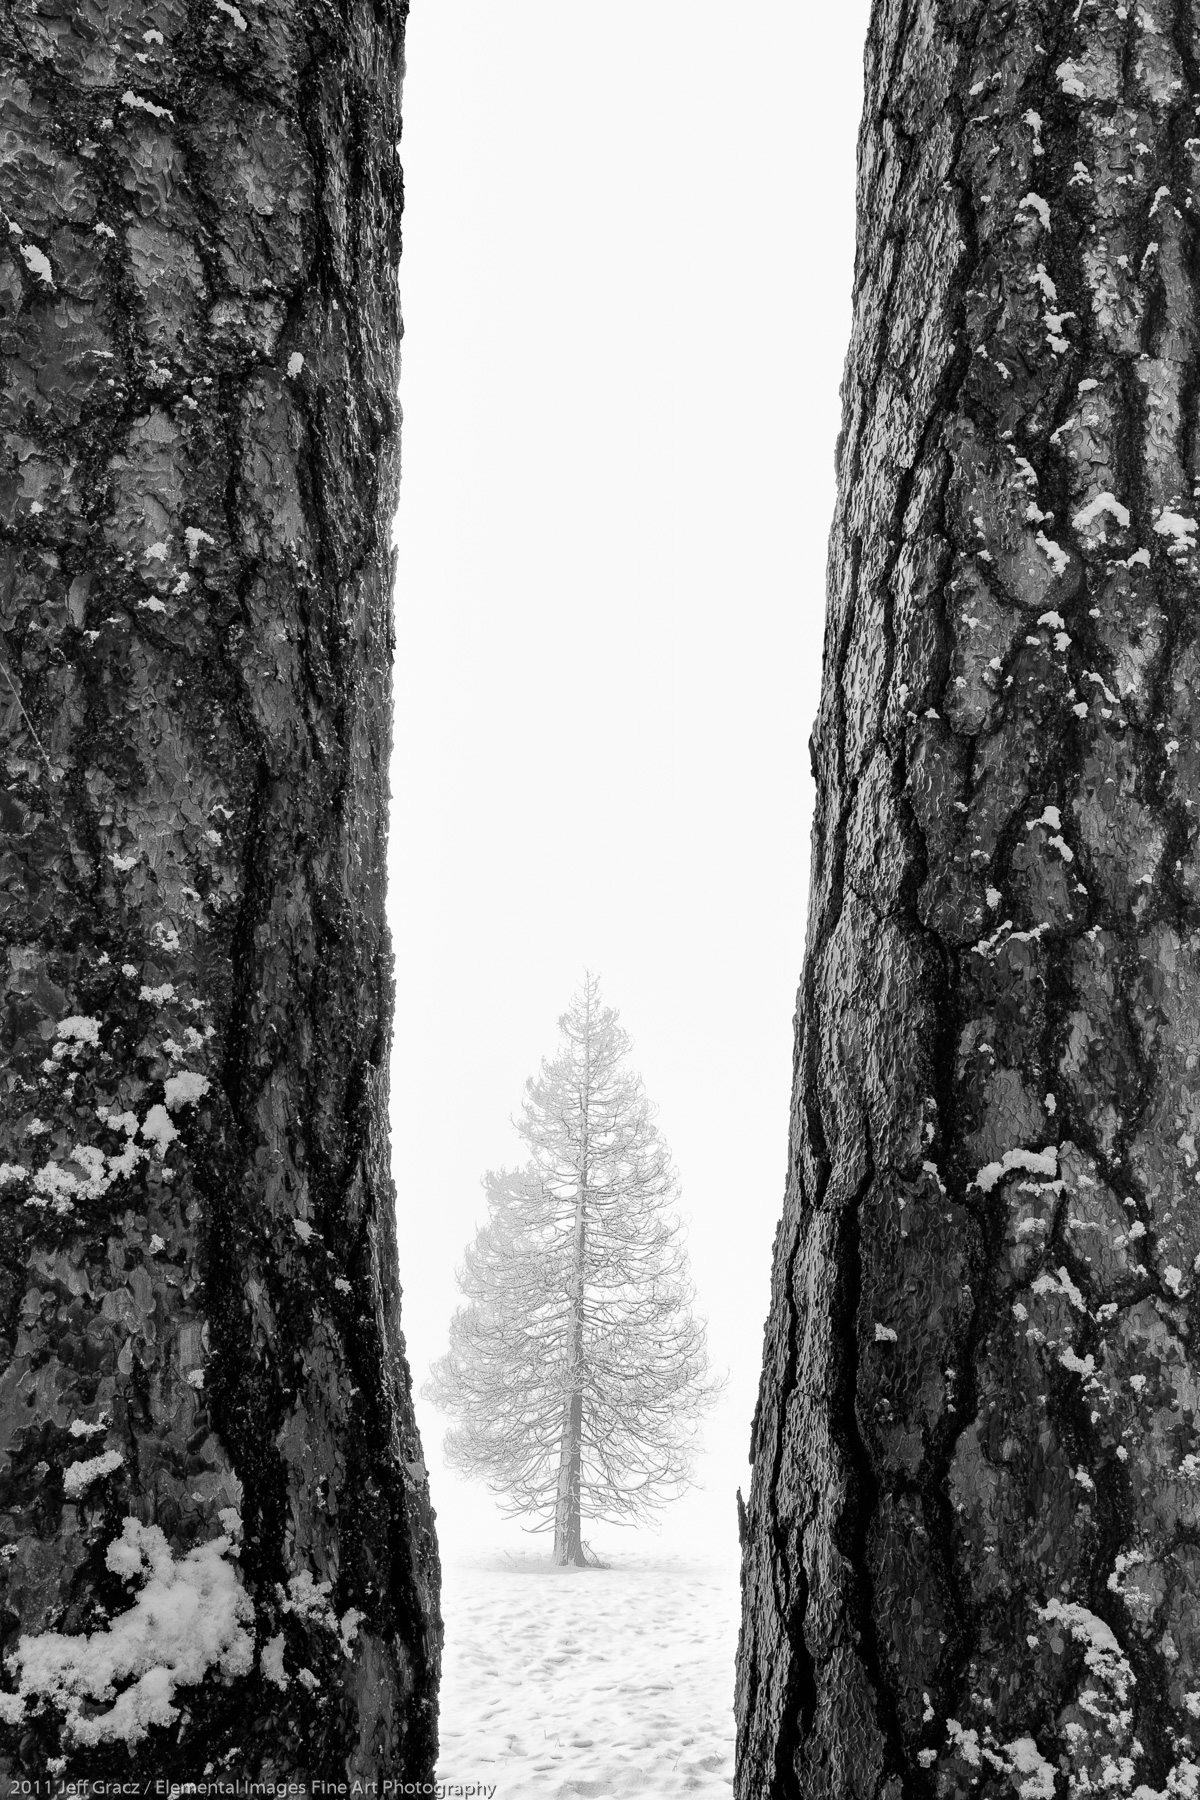 Three trees | Yosemite National Park | CA | USA - © 2011 Jeff Gracz / Elemental Images Fine Art Photography - All Rights Reserved Worldwide